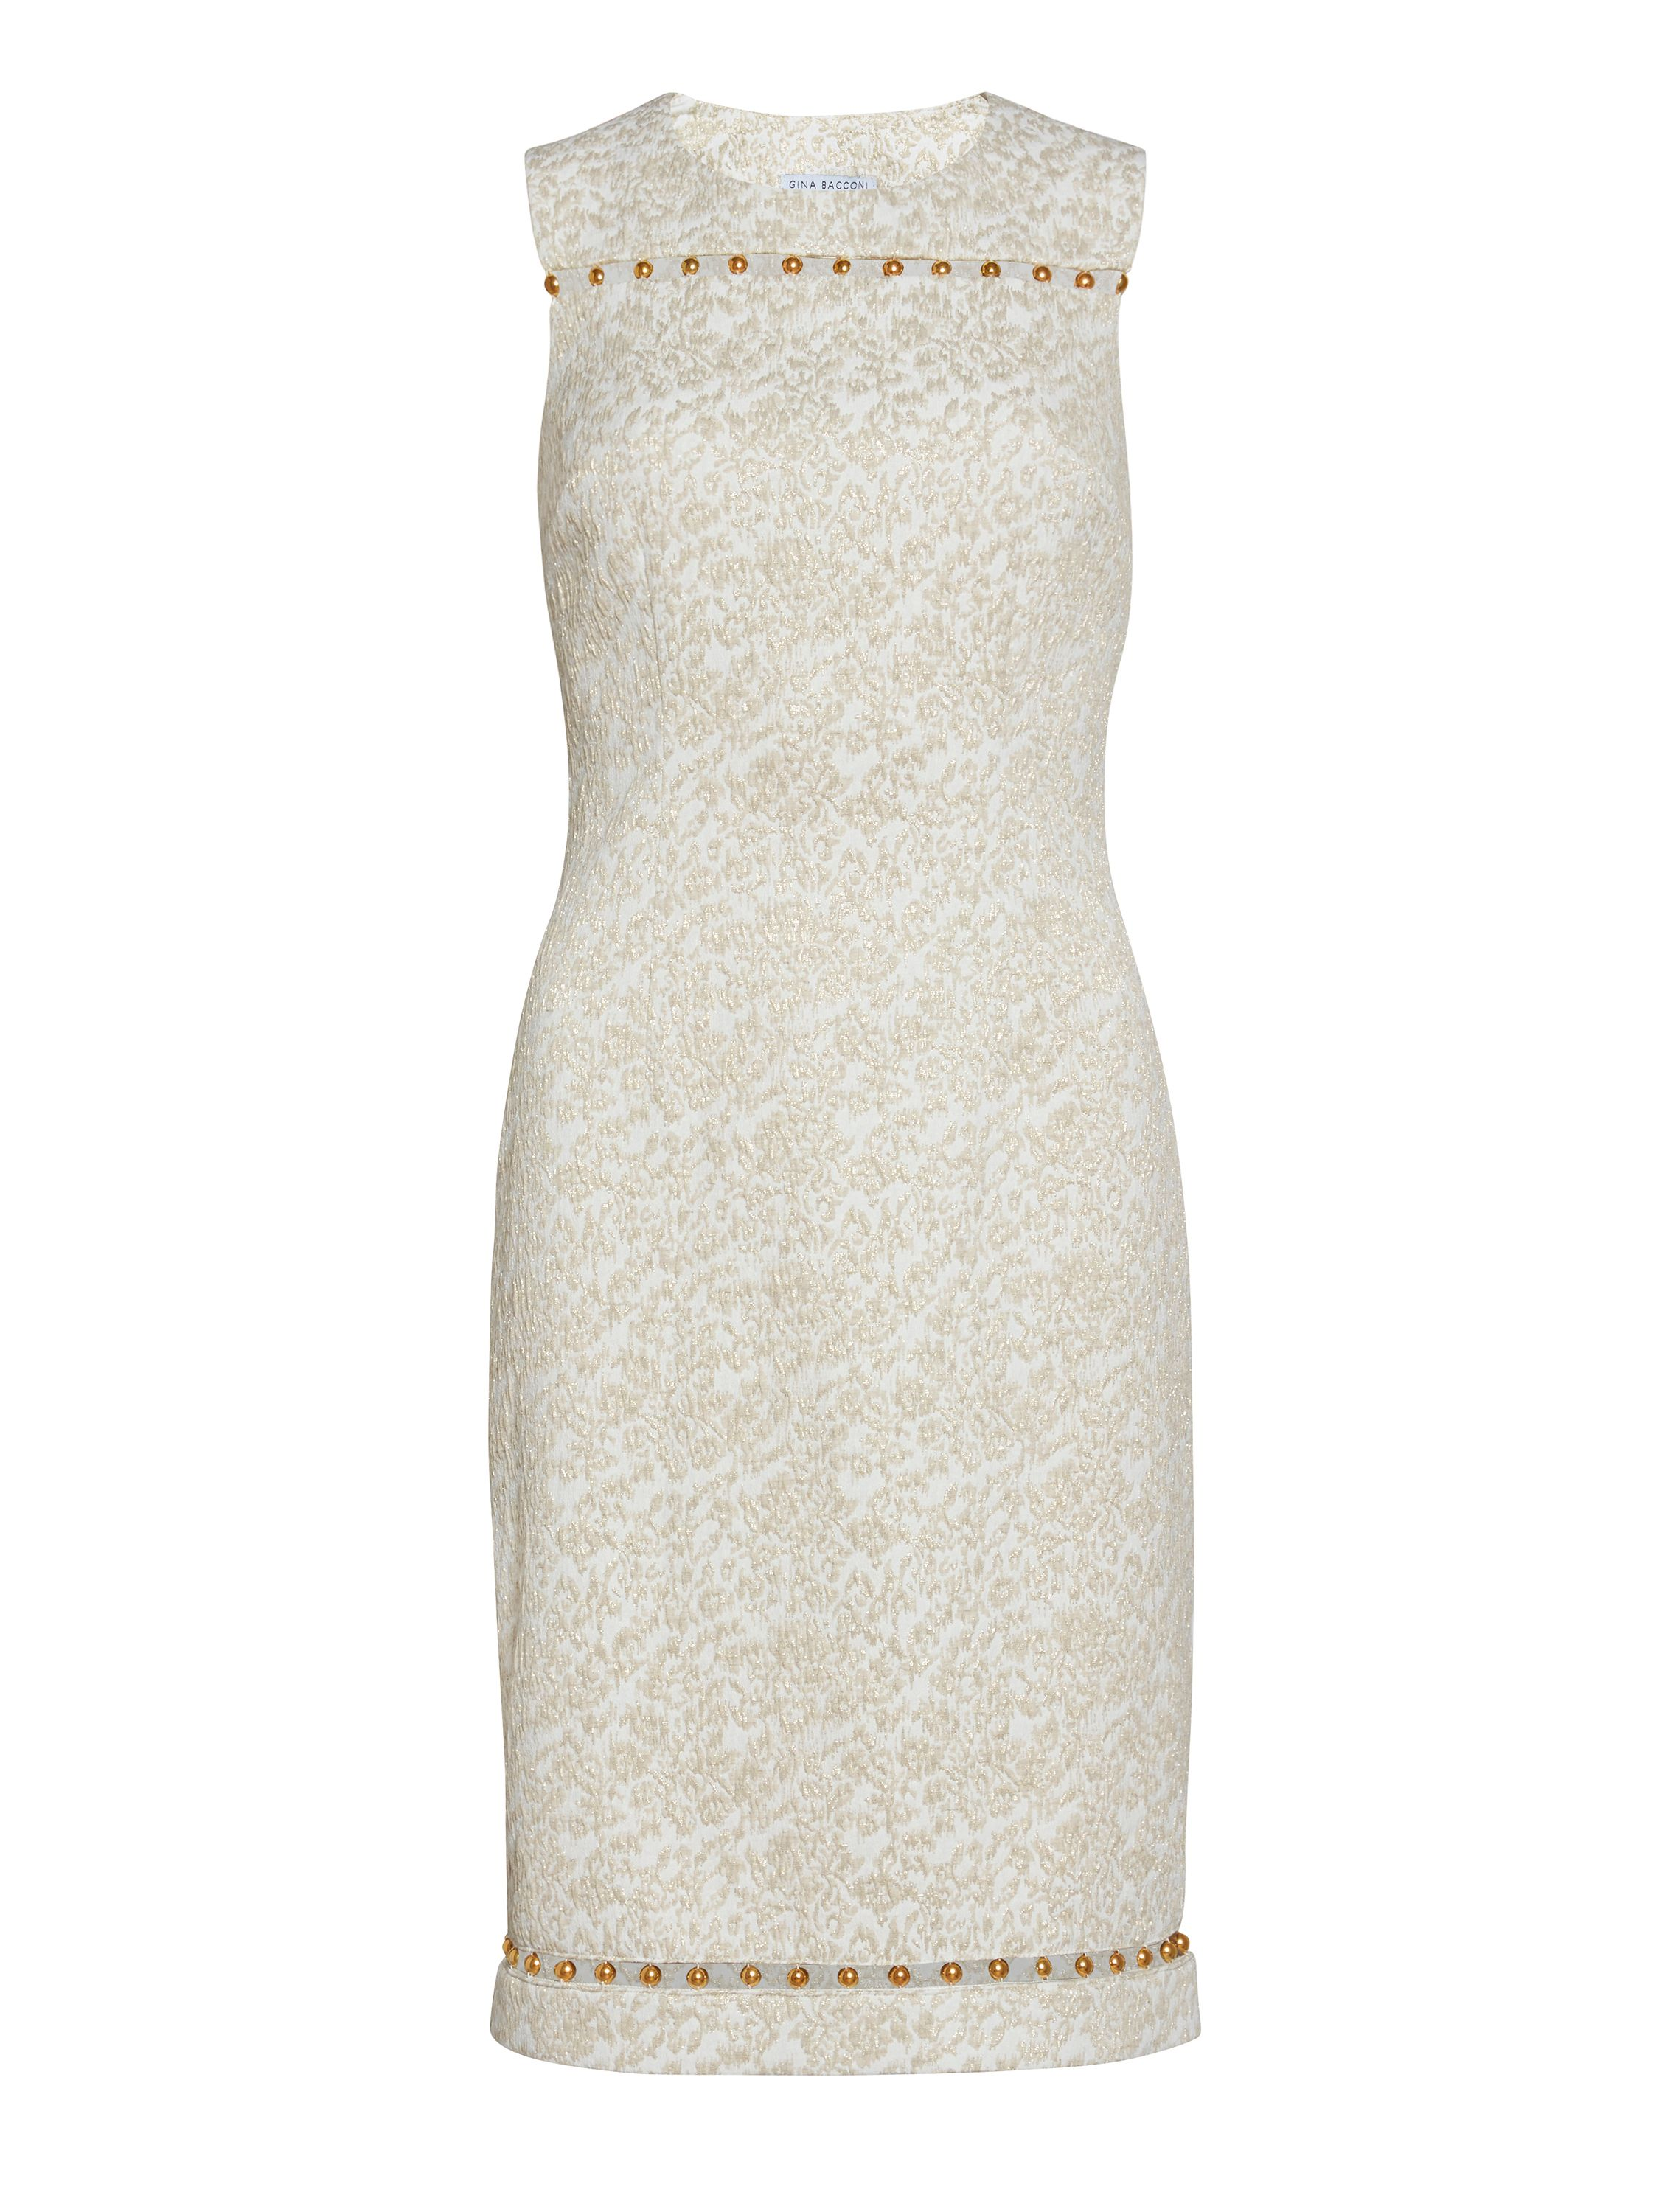 Gina Bacconi Cream gold jacquard dress with trim, Gold